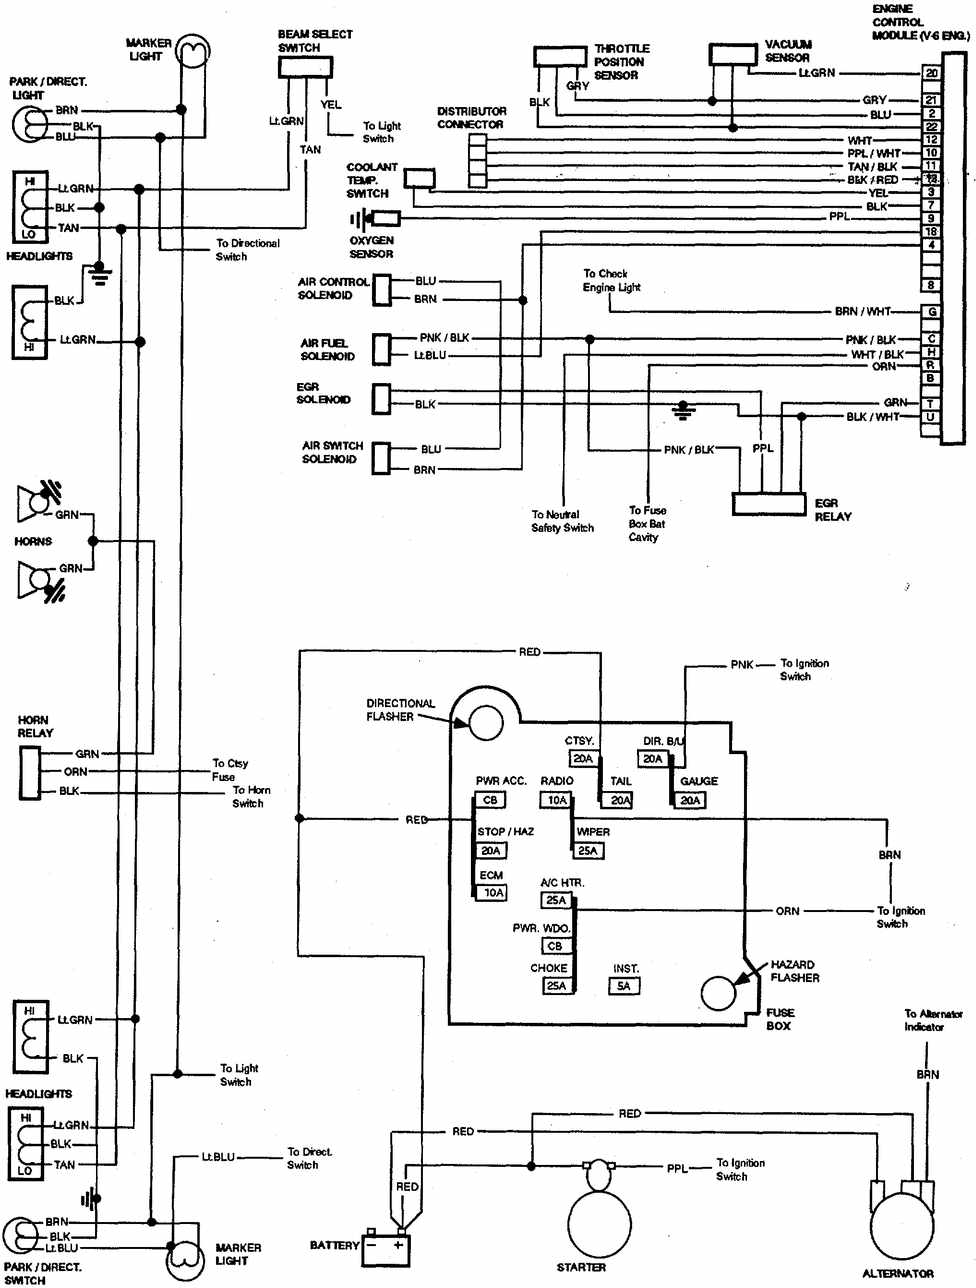 72 chevy truck fuse box diagram